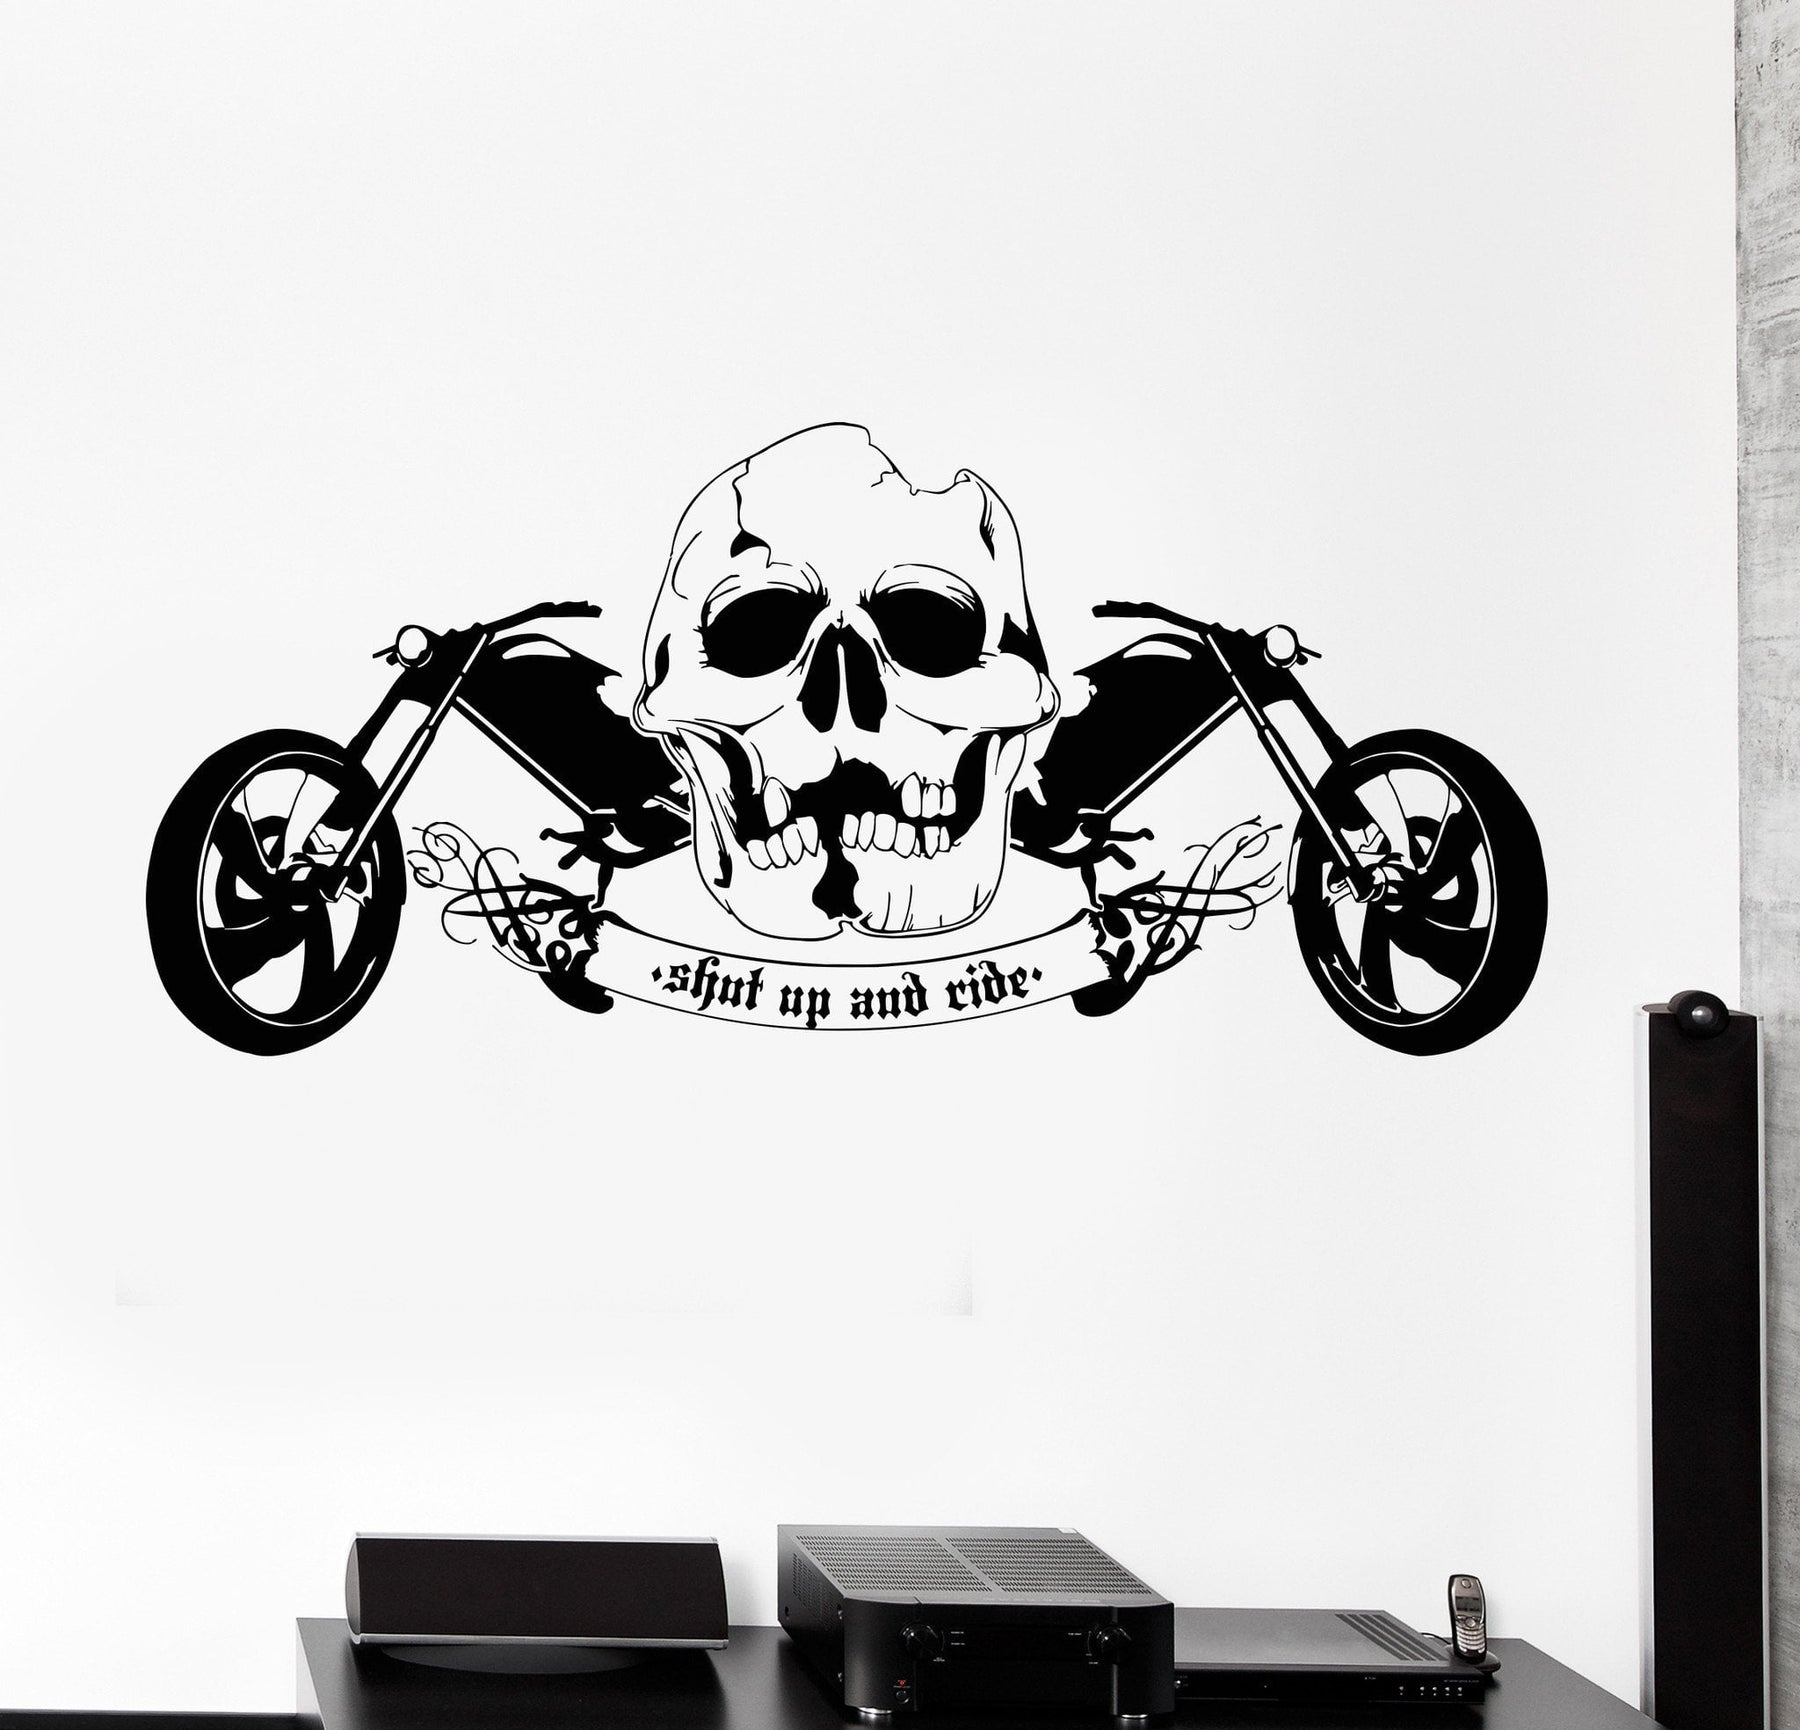 Vinyl wall decal cool skull motorcycle speed biker driver garage cruiser sticker unique gift 658ig